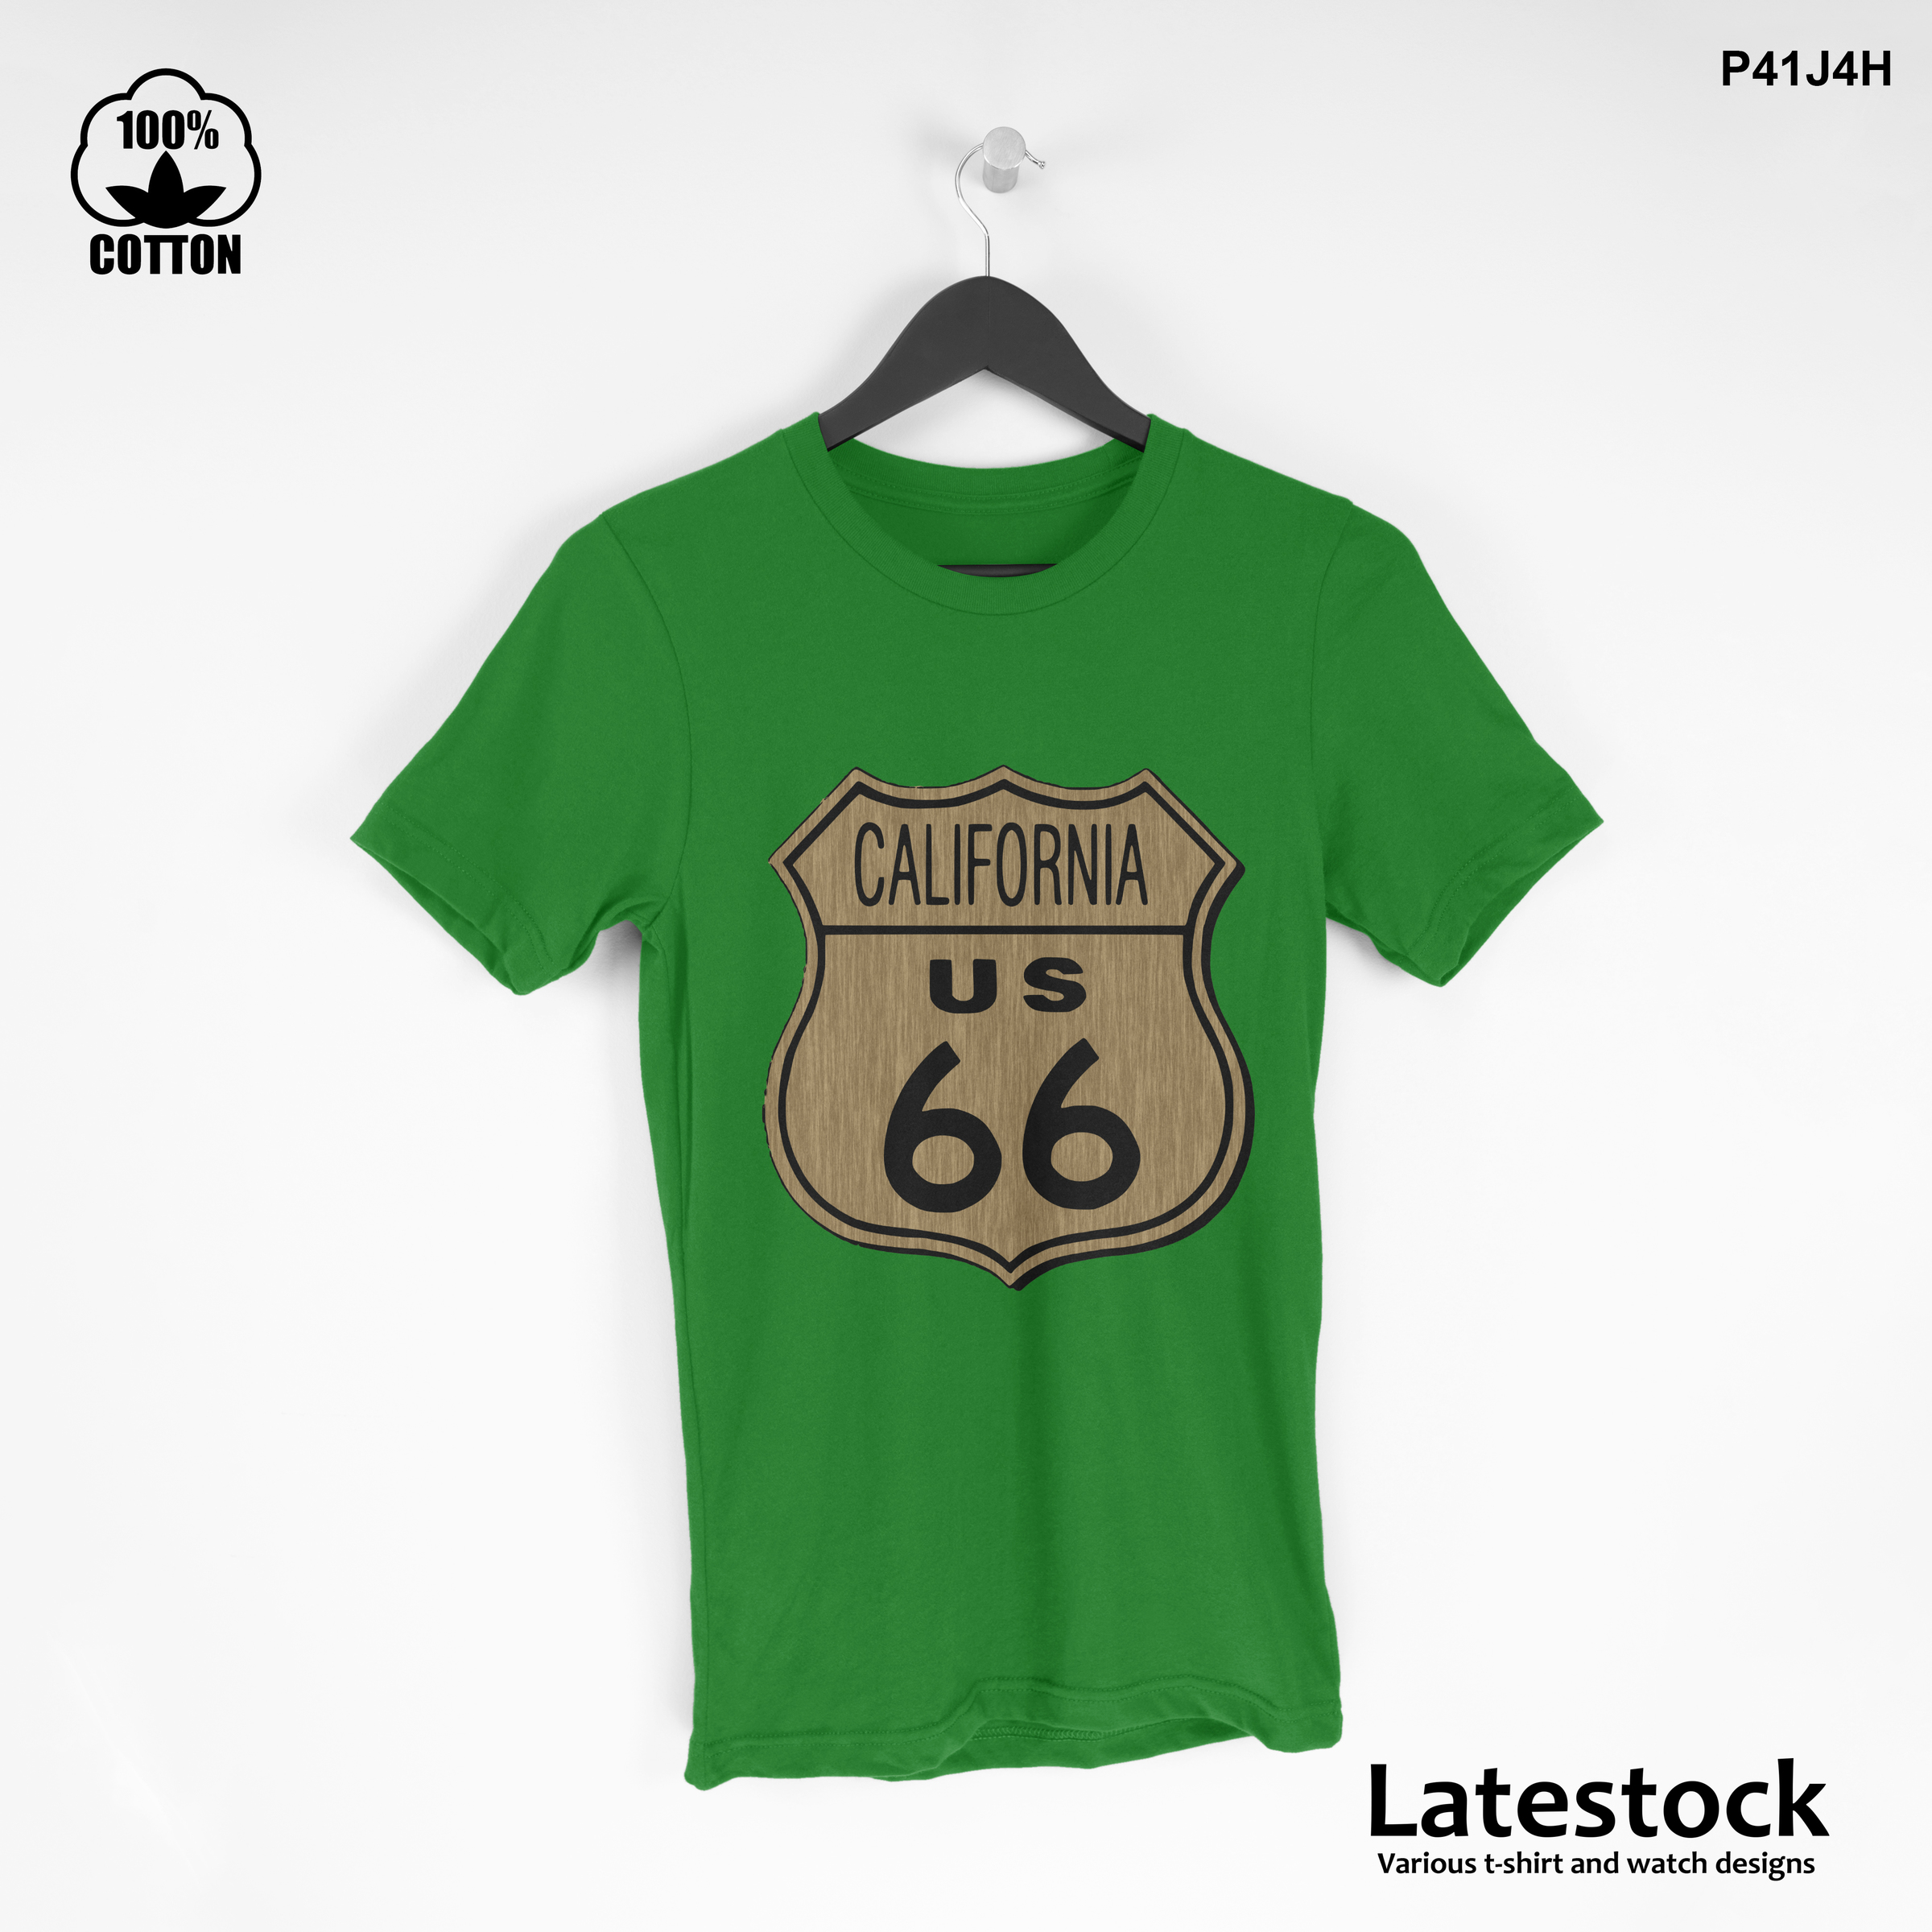 1 LIMITED EDITION!! Route 66 California Graphic T shirt Spring green.jpg